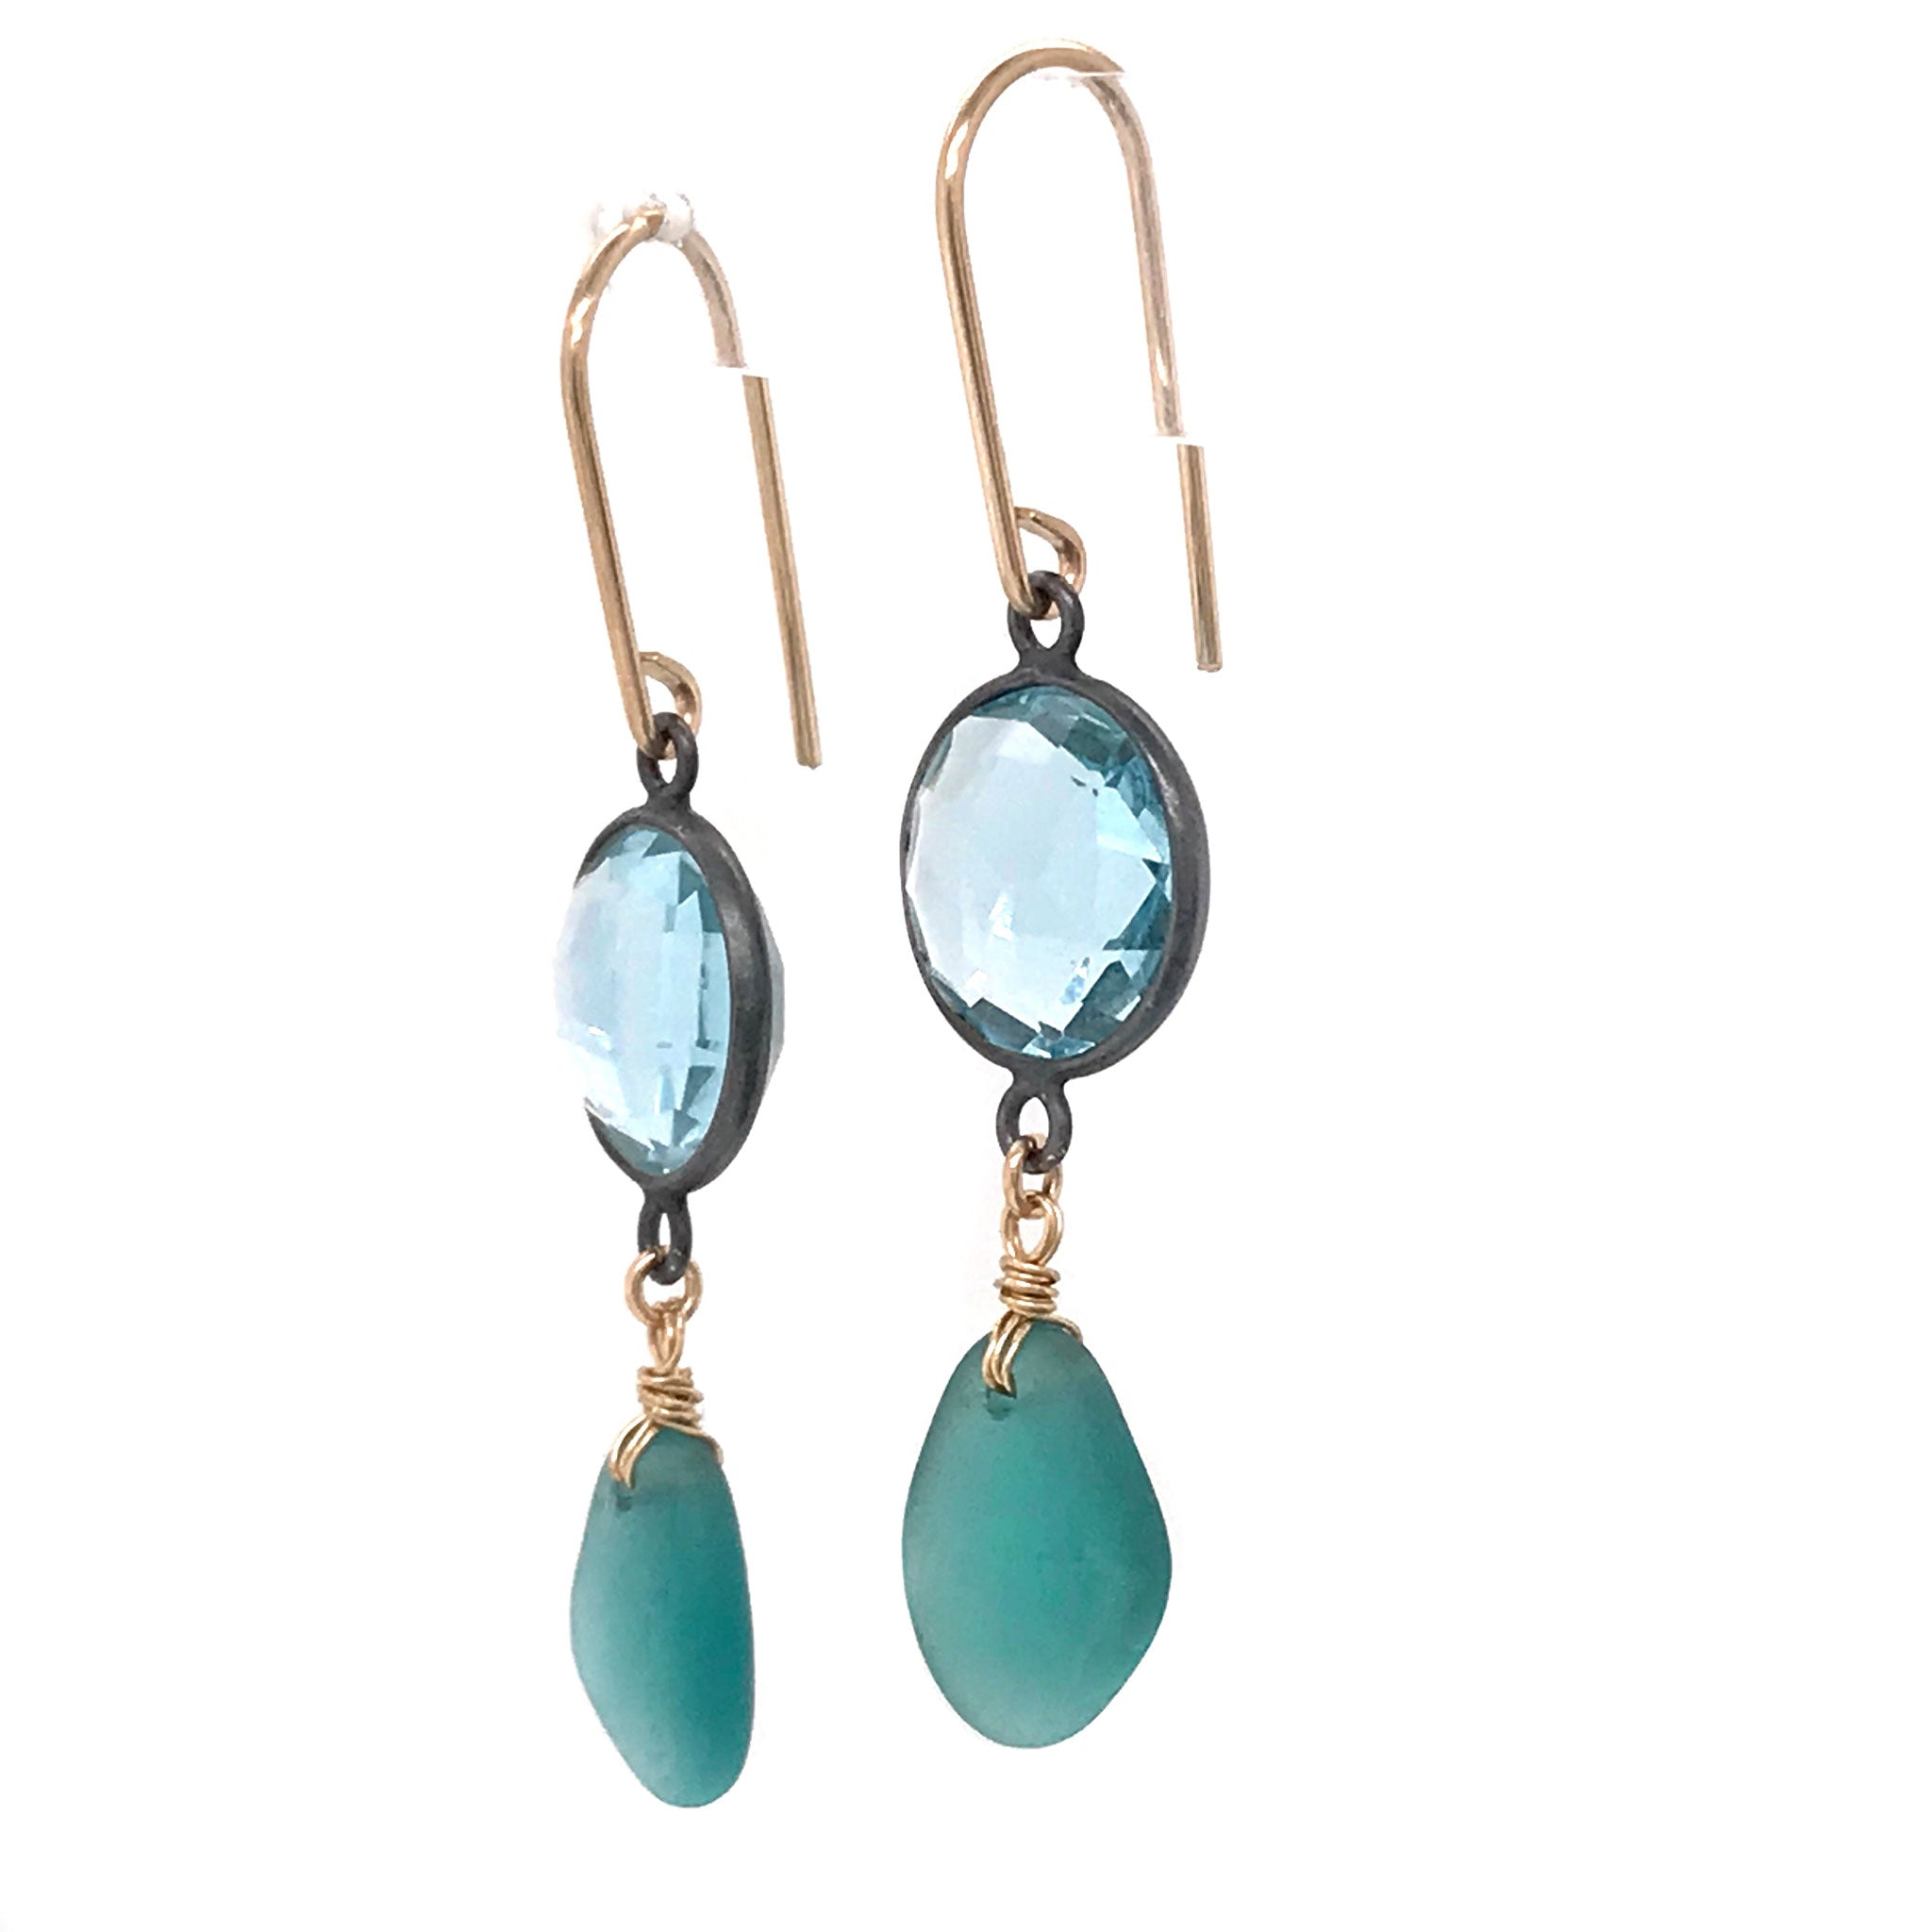 teal seaglass earrings chandelier earrings Kriket Broadhurst jewelry